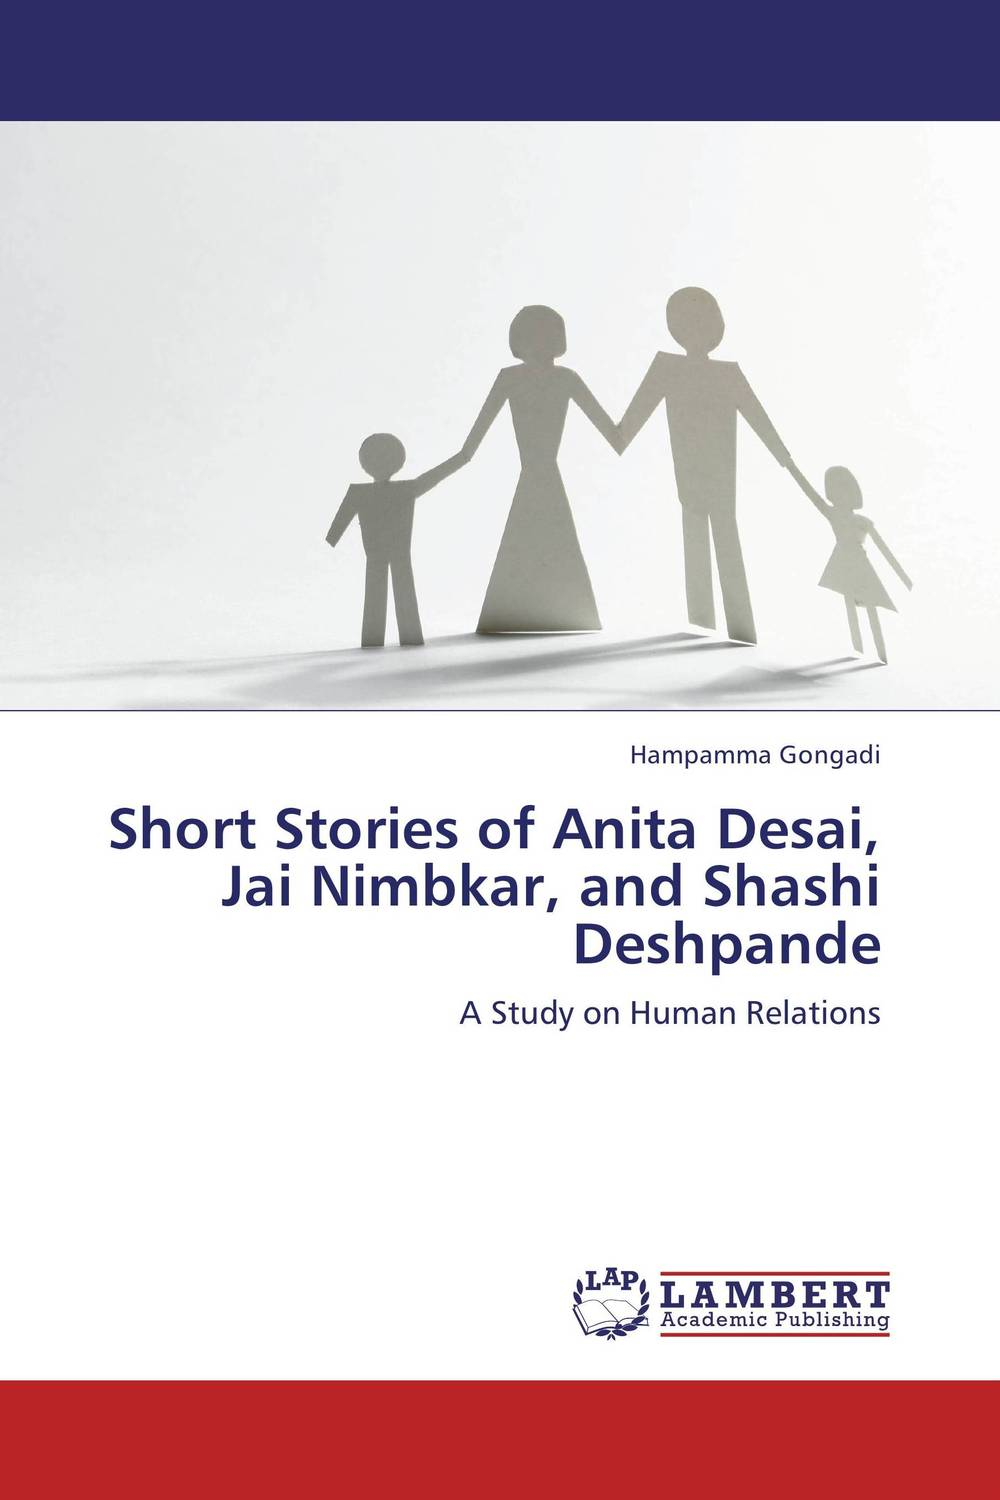 Short Stories of Anita Desai, Jai Nimbkar, and Shashi Deshpande the best short stories